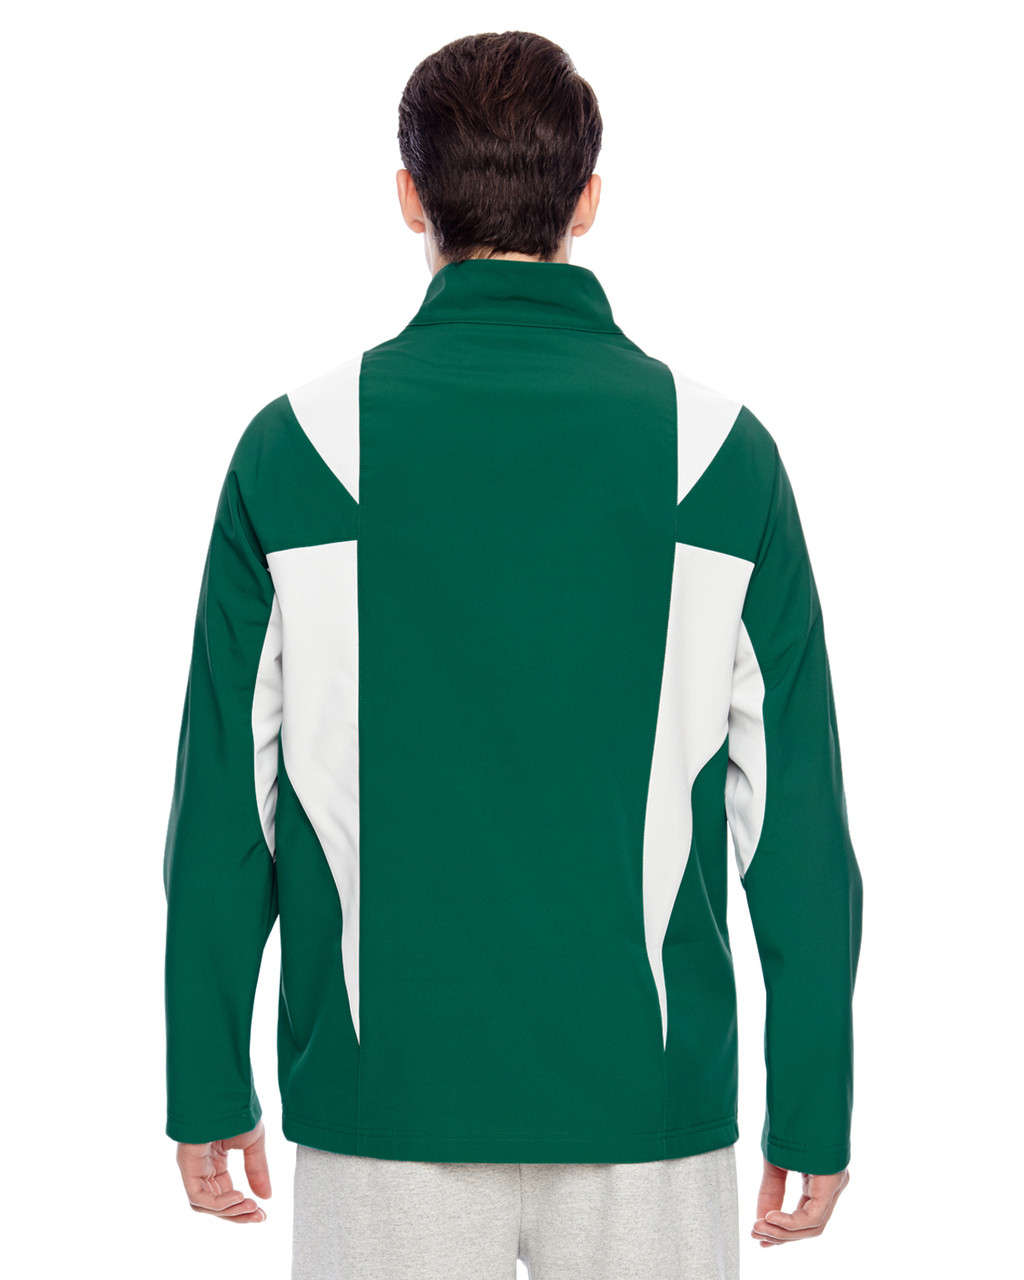 Sport Forest/Sport Silver - Back, TT82 Team 365 Icon Colourblock Soft Shell Jacket  | BlankClothing.ca